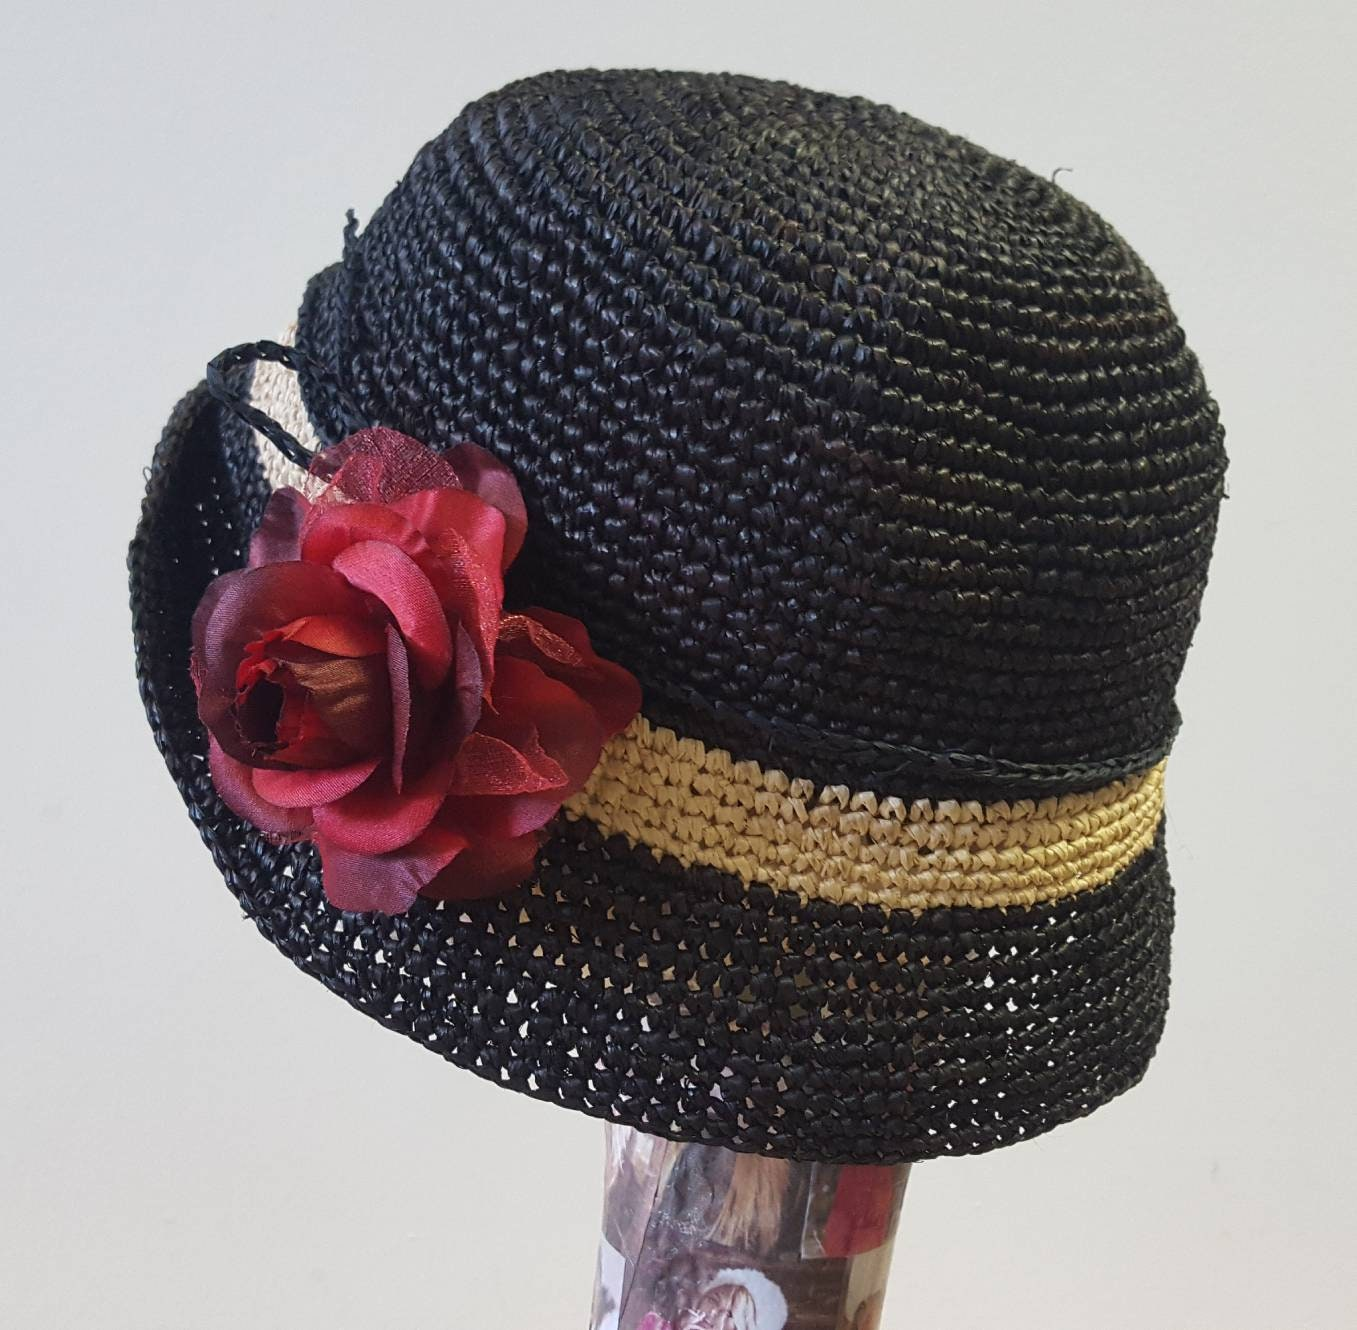 b307c26c3 Crochet Raffia Hat in Black or Chocolate with Silk and Velvet Red ...